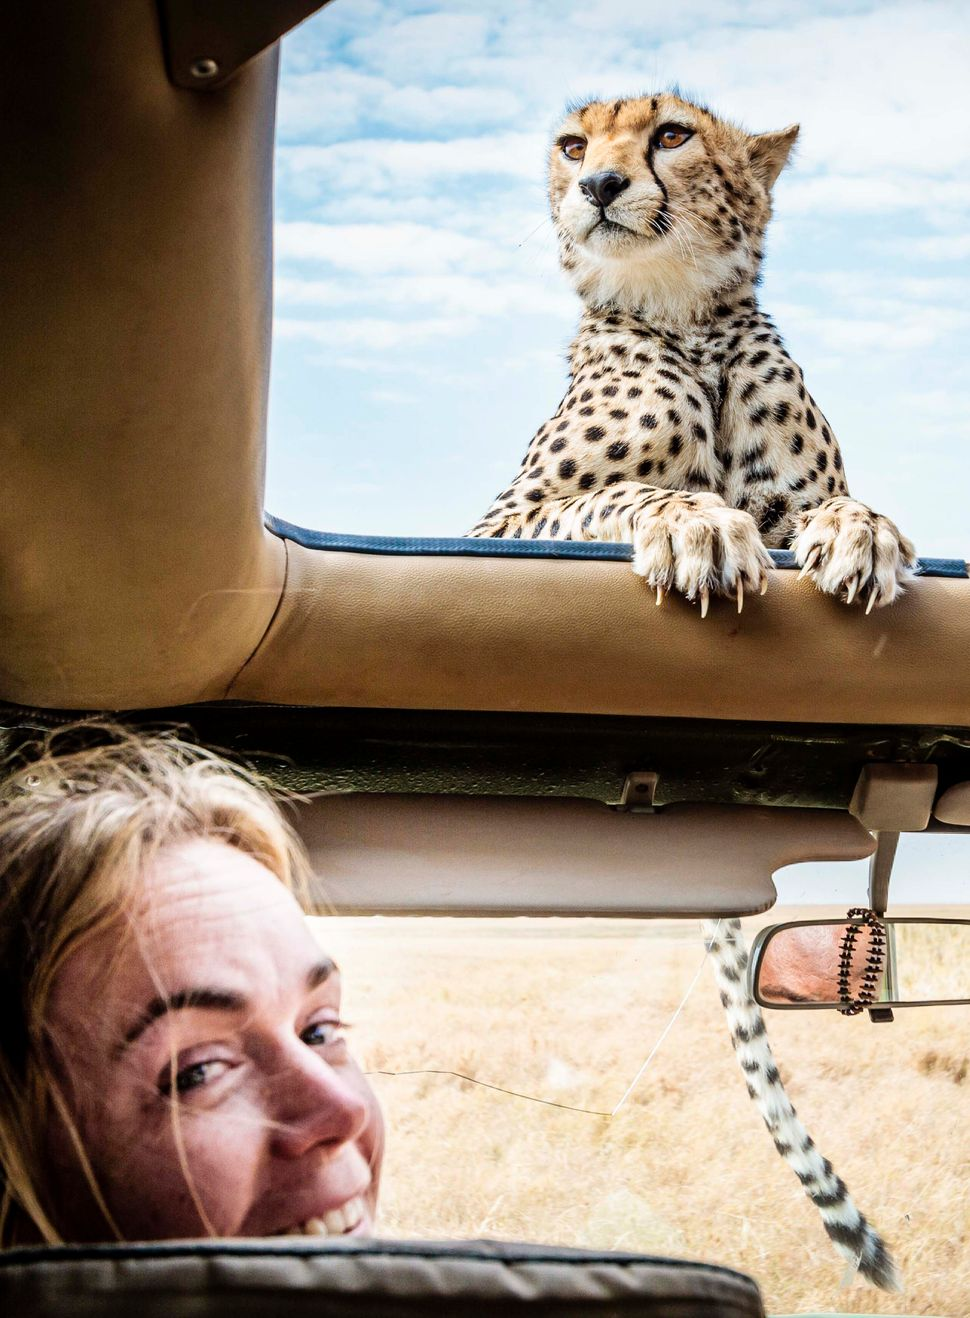 Bobby-Jo Clow with the Cheetah resting on the roof. (BOBBY-JO CLOW PHOTOGRAPHY/CATERS NEWS)